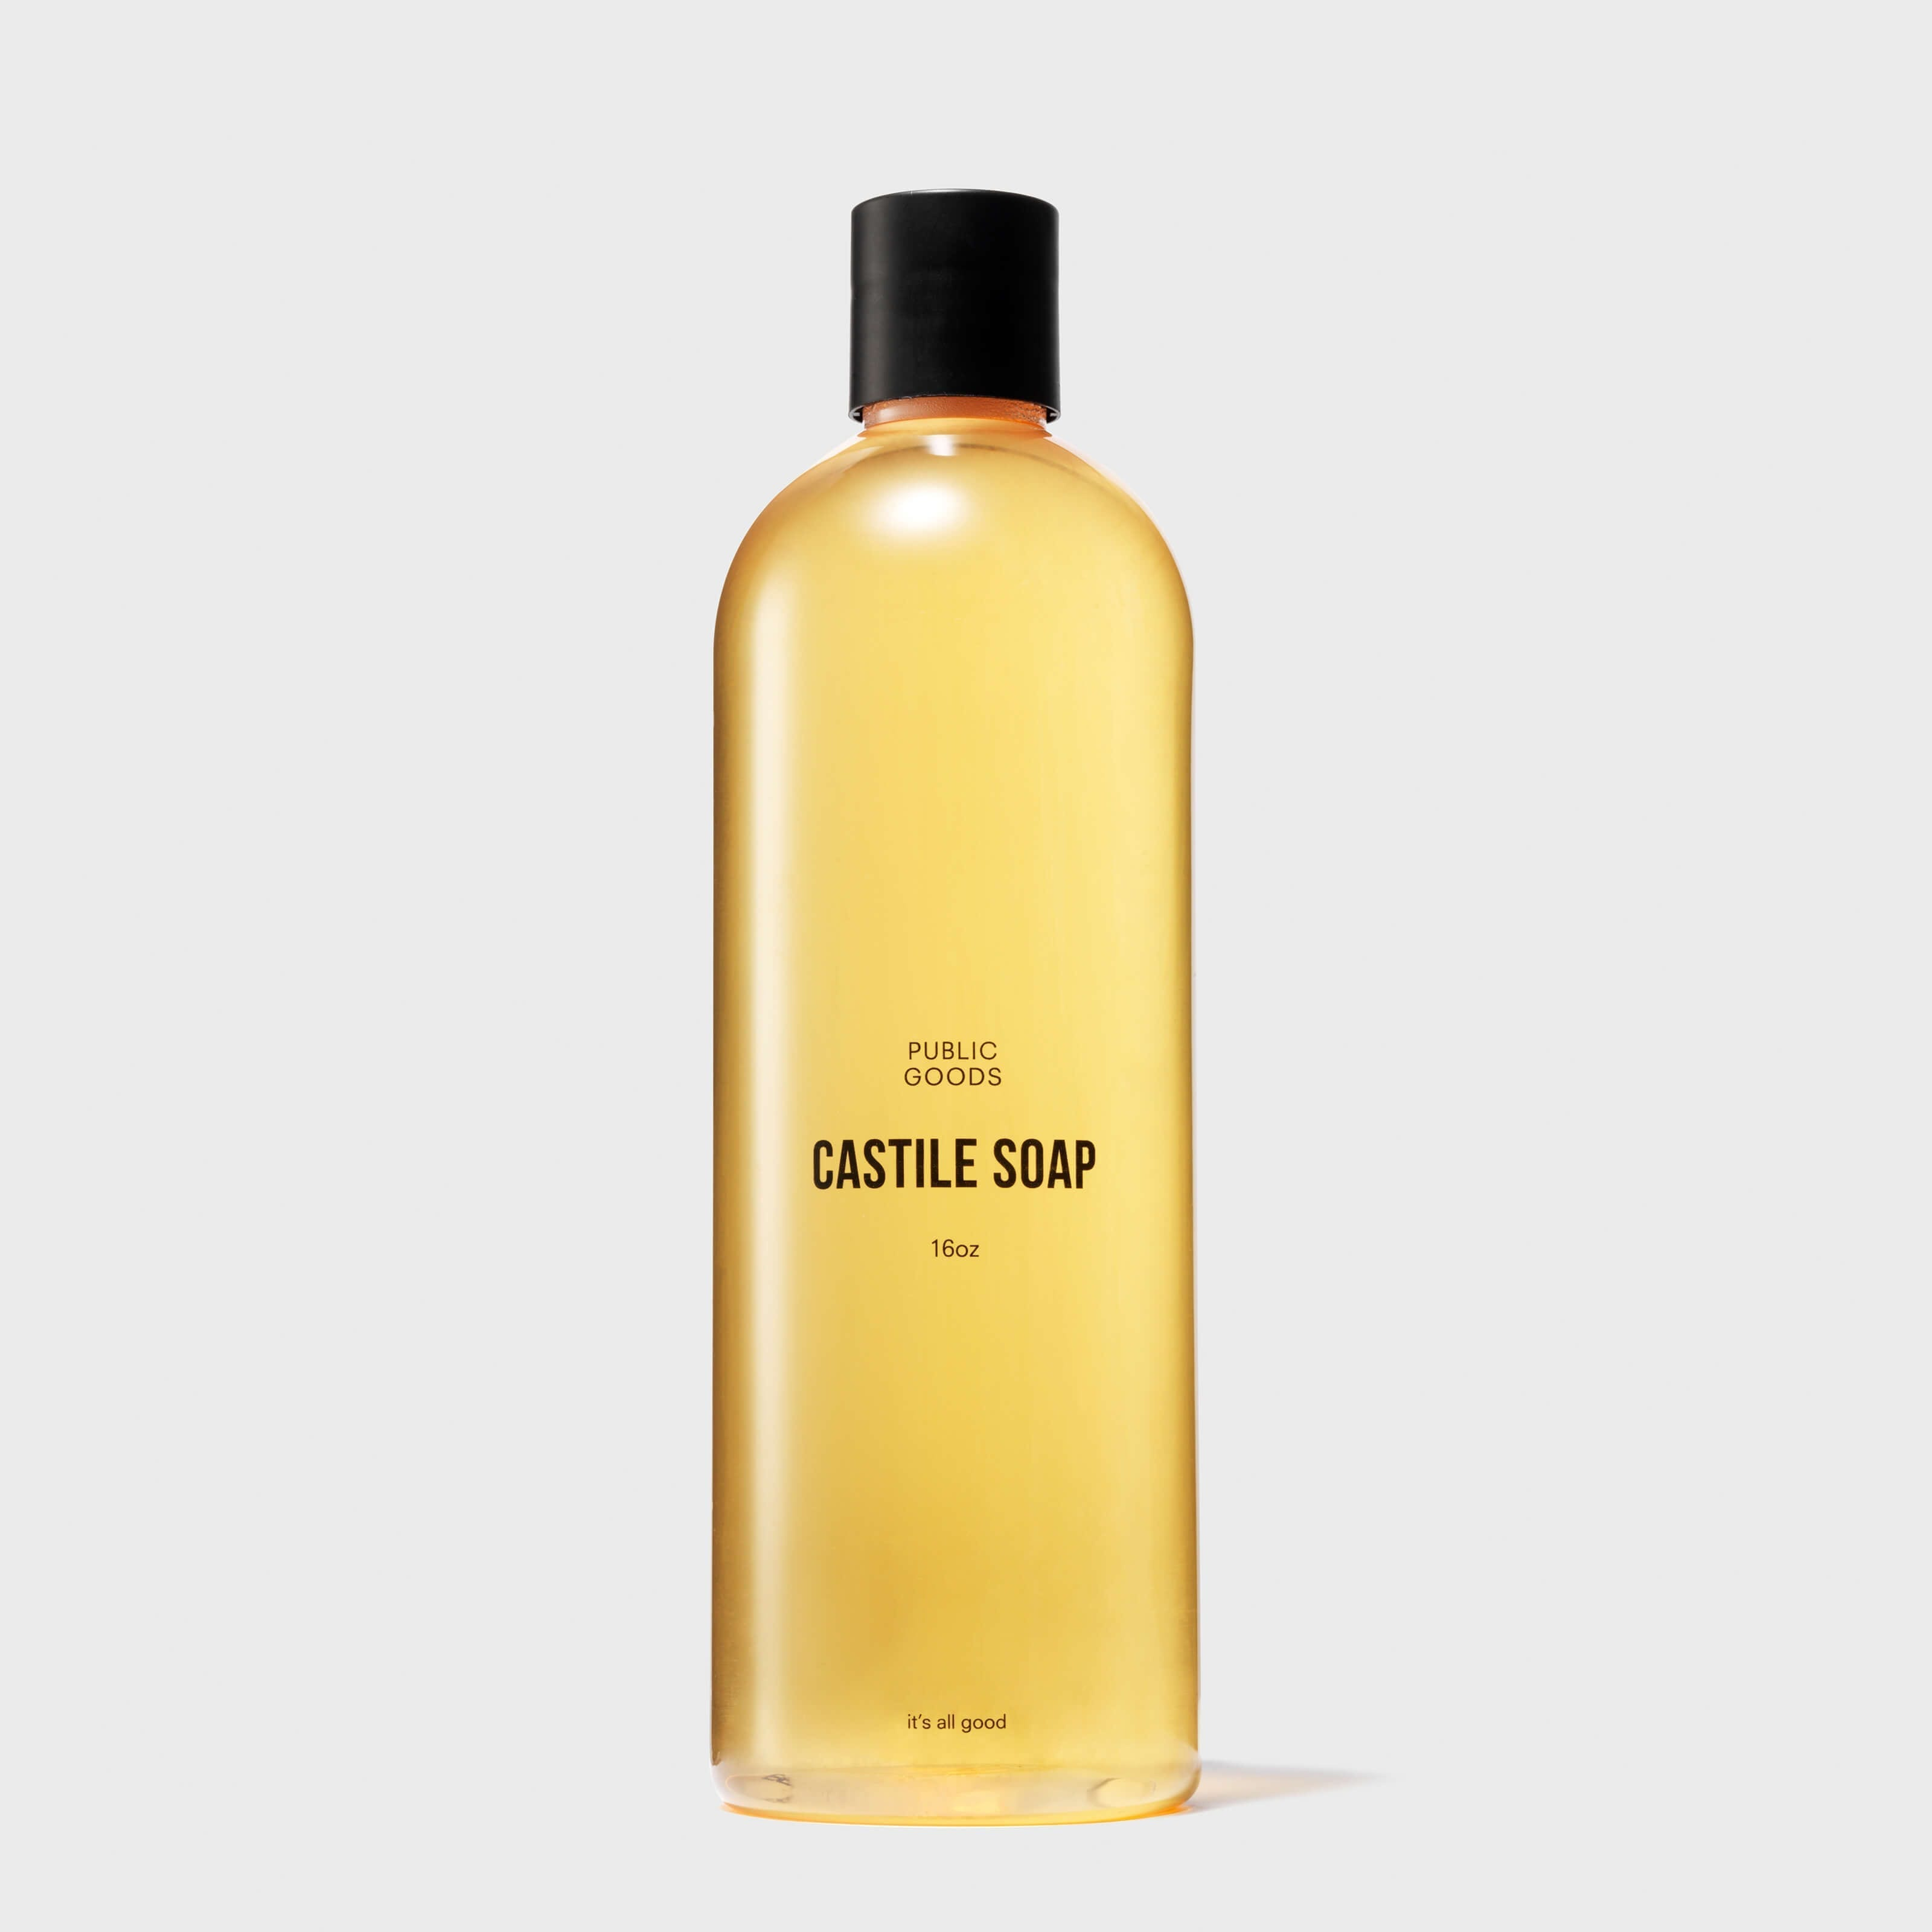 public goods castile soap bottle